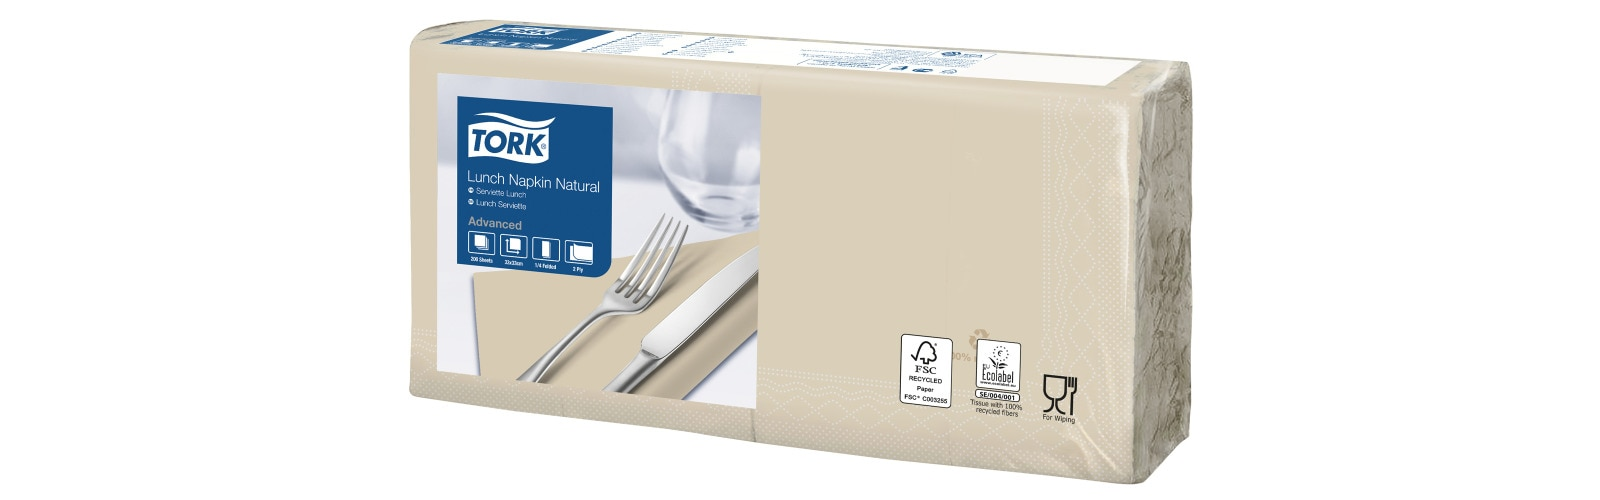 477350_Tork Natural Environmental Napkins_original.jpg